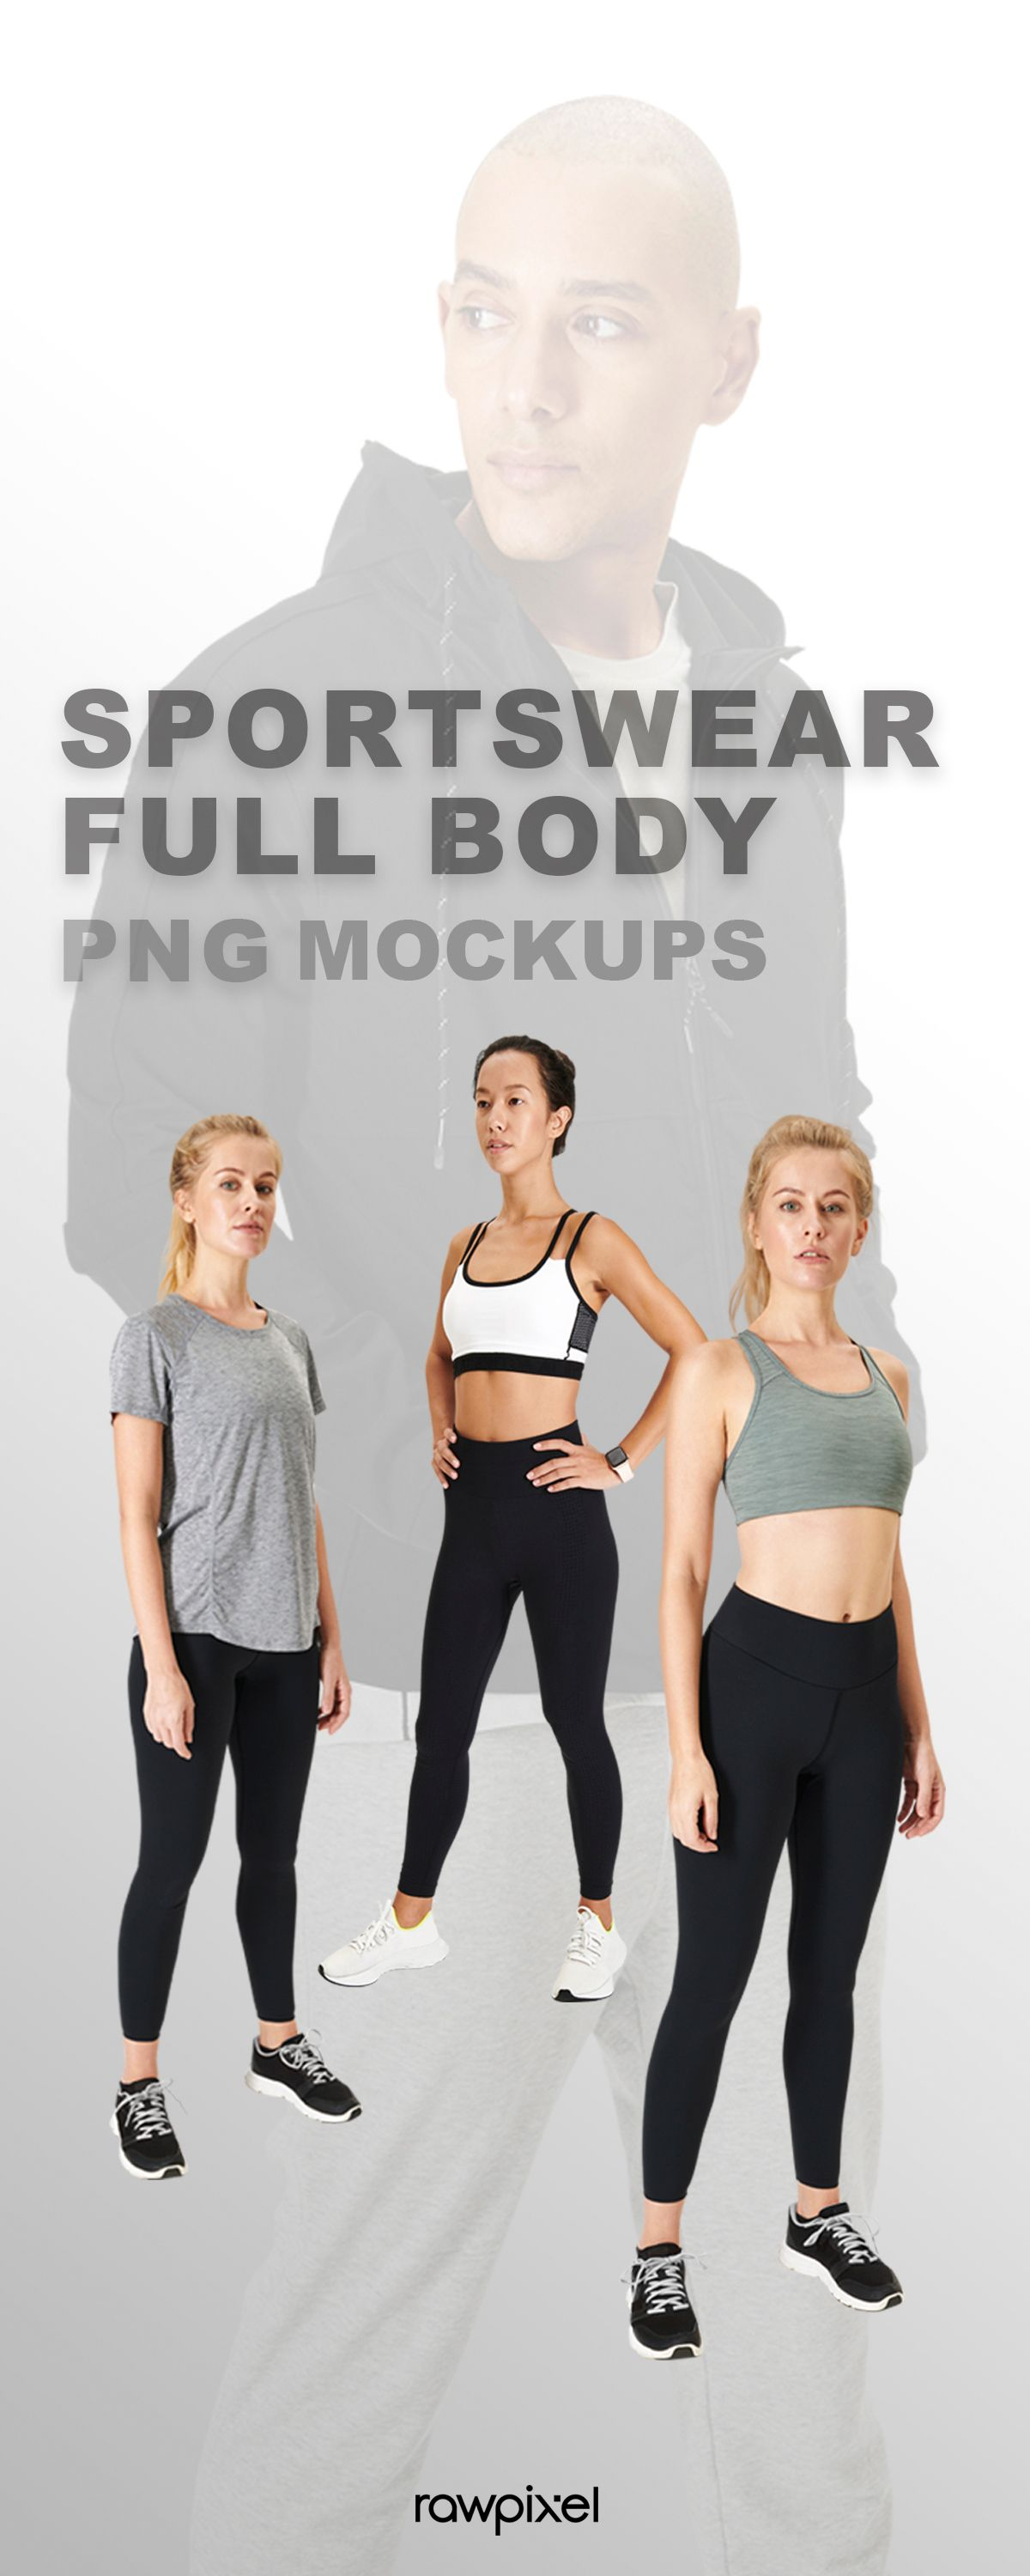 Download High Resolution People Sportswear Apparel Fashion Mockups And Stock Photo Set Clothing Mockup Stock Photos Royalty Free Stock Photos